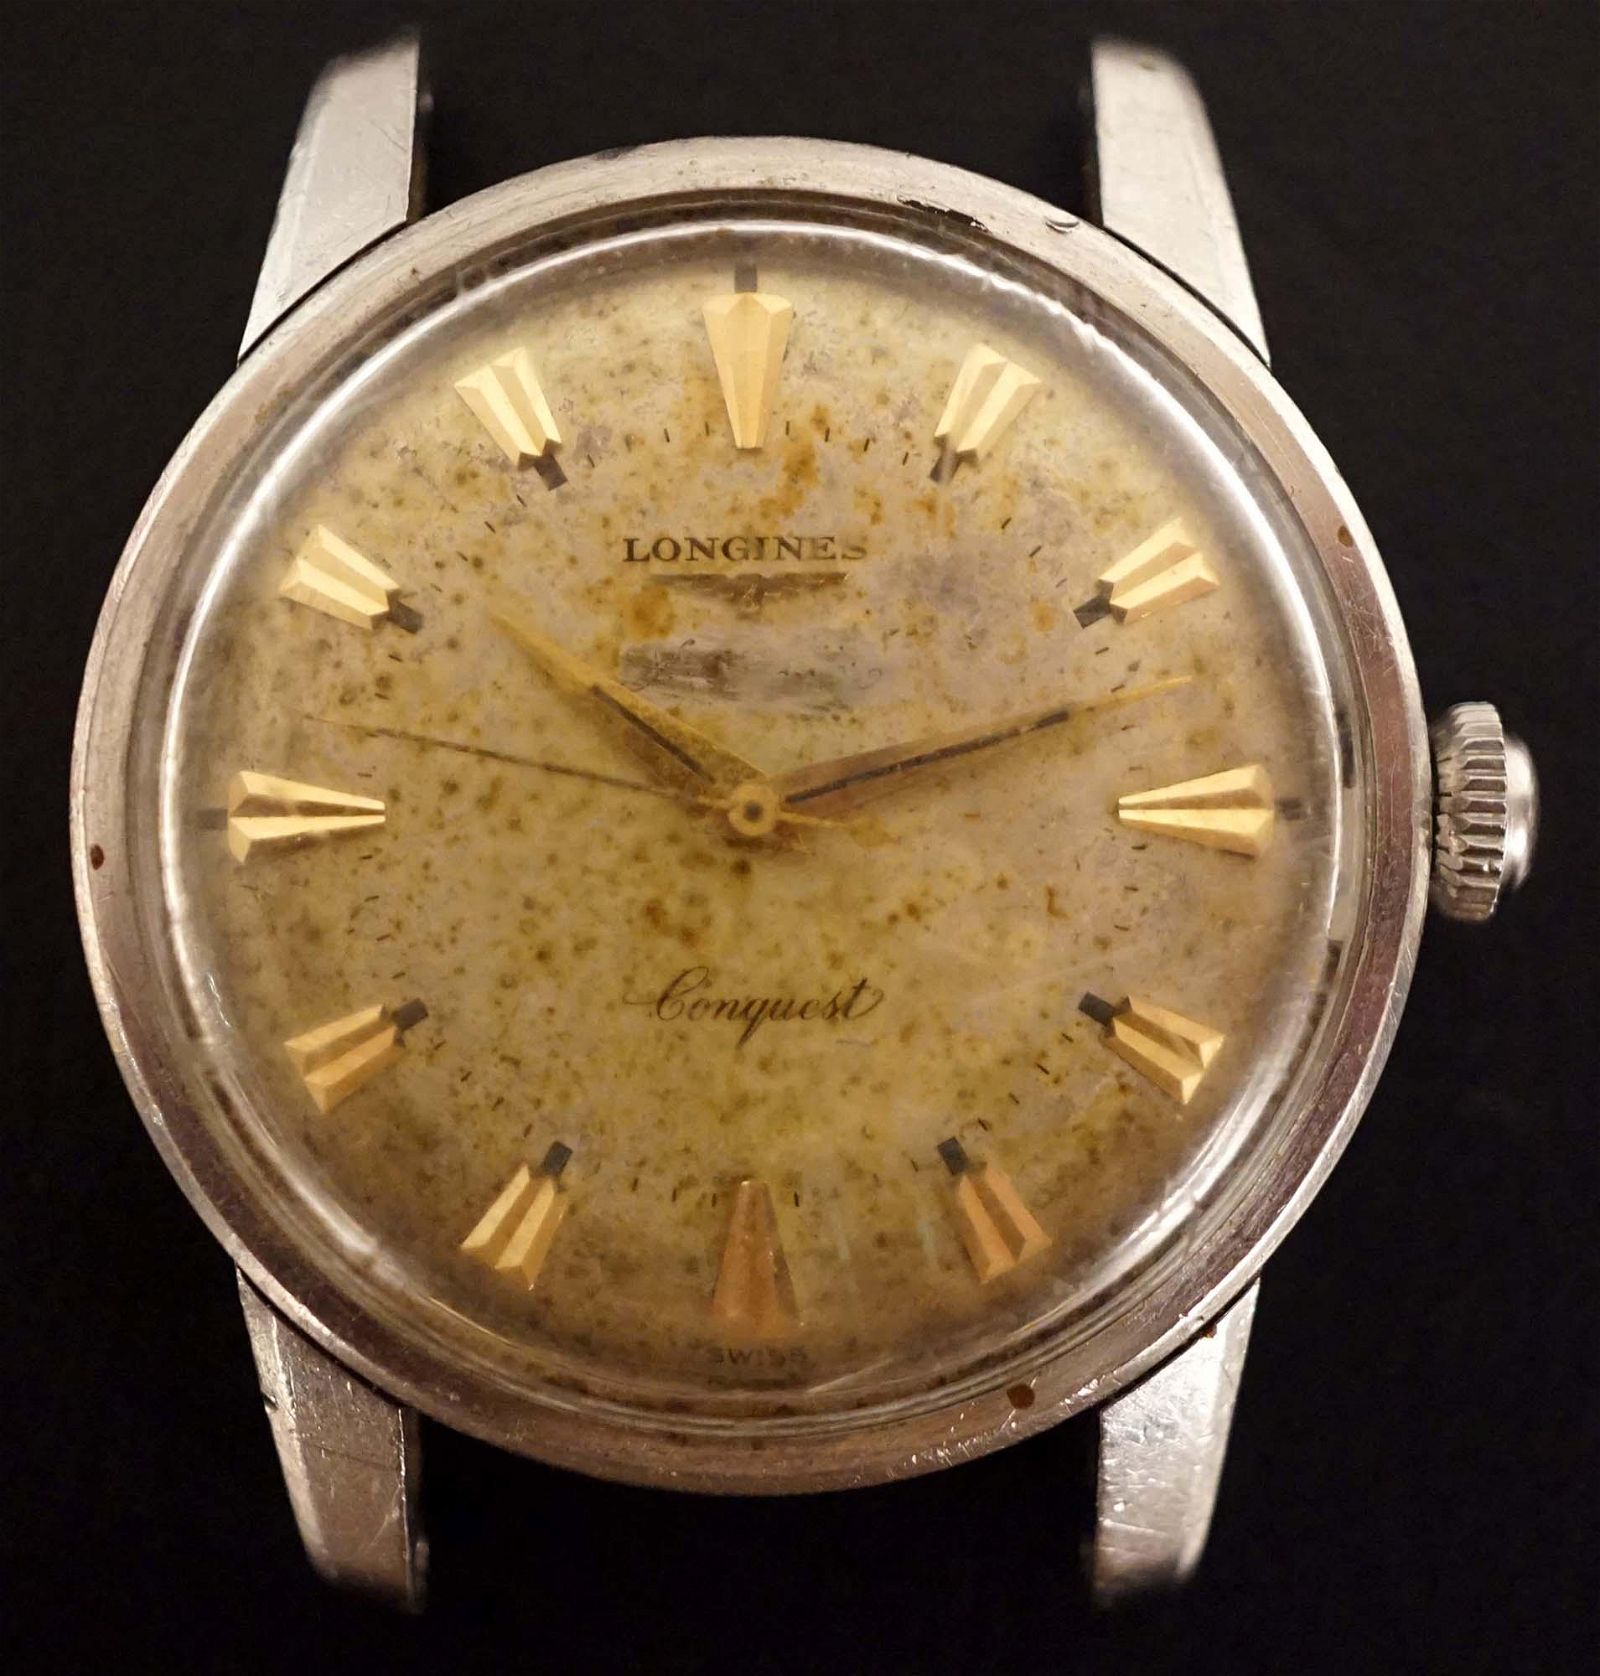 Longines - Conquest watch - 1956